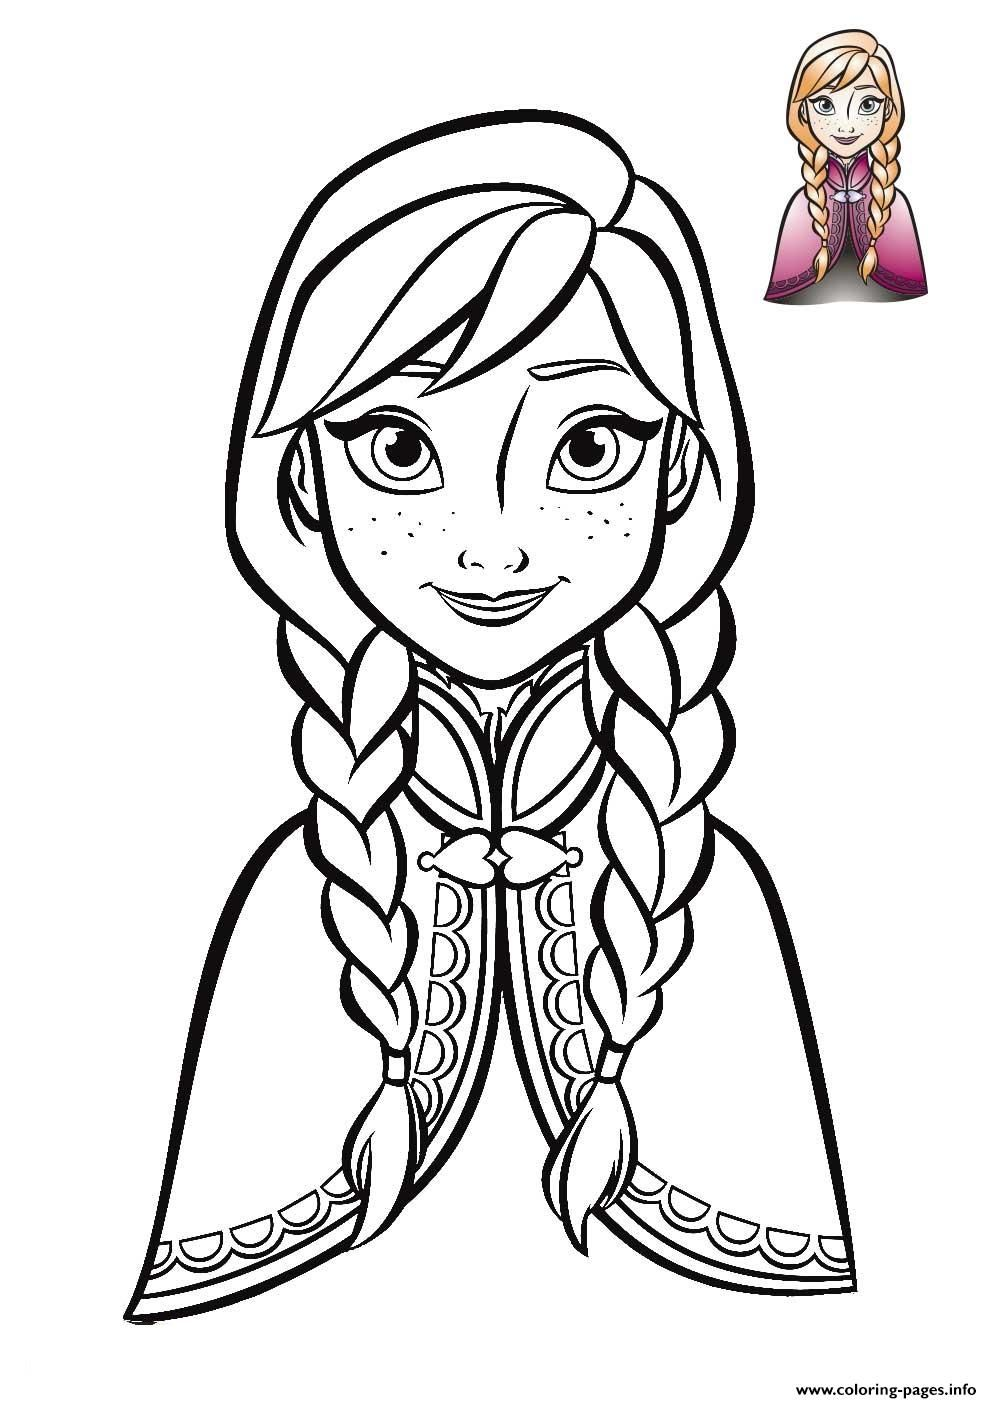 Print Anna Frozen Face 2018 Coloring Pages Disney Princess Coloring Pages Elsa Coloring Pages Disney Coloring Pages